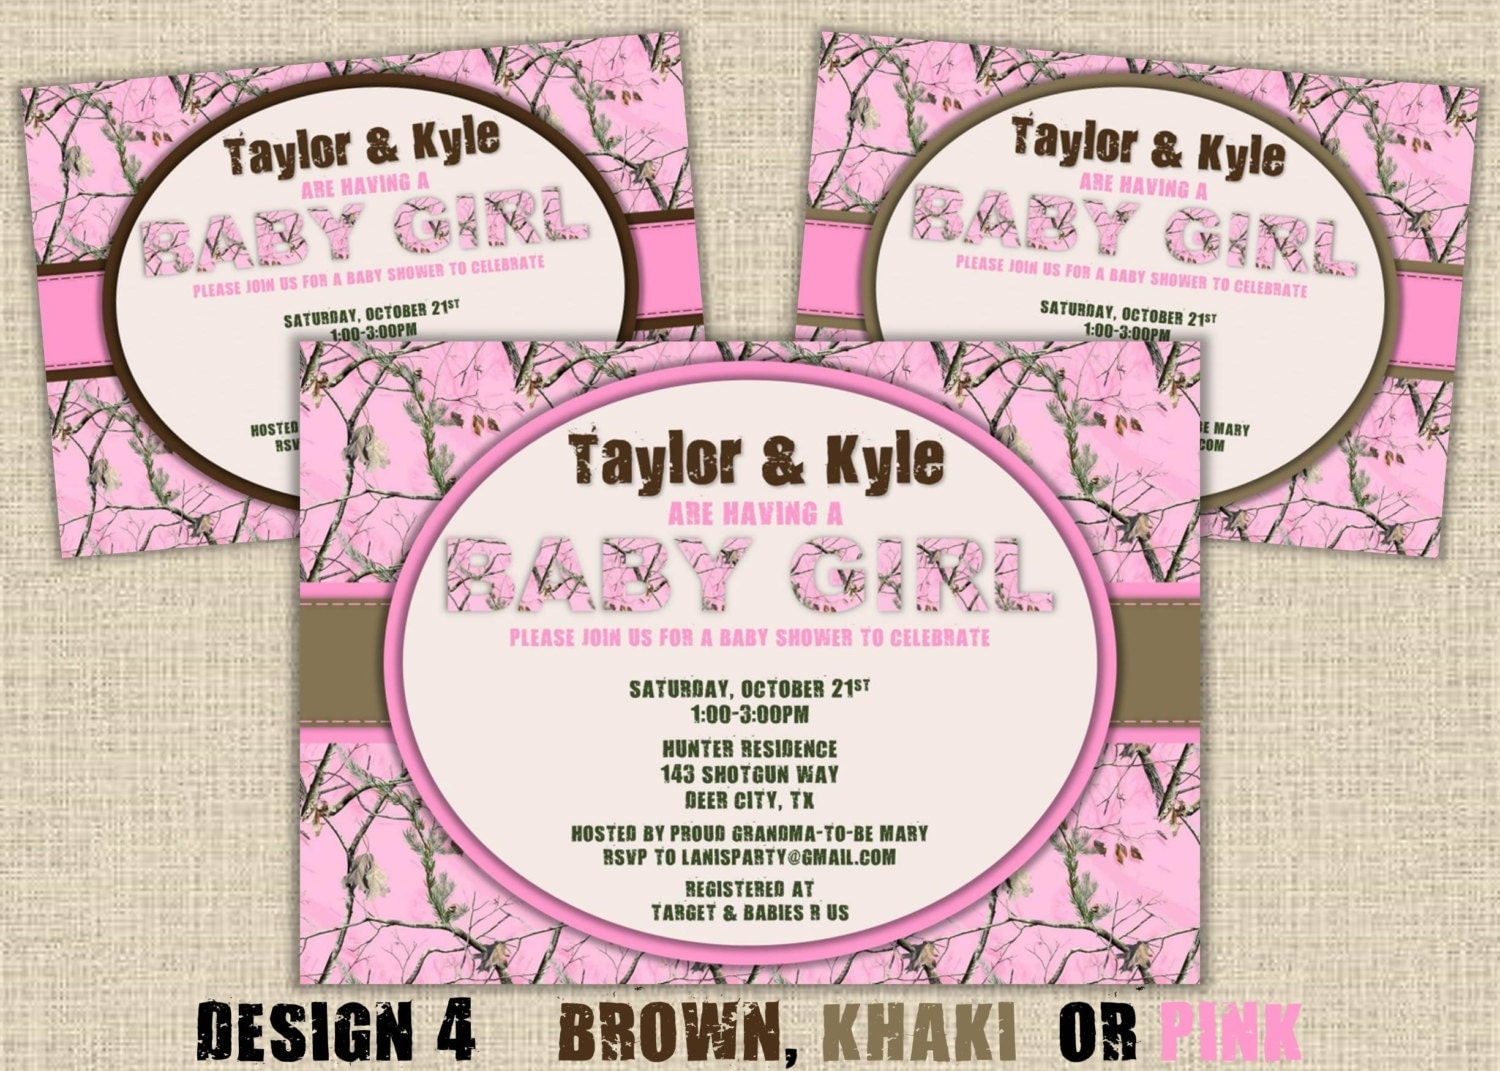 Pink Camo Baby Shower Invitations is one of our best ideas you might choose for invitation design